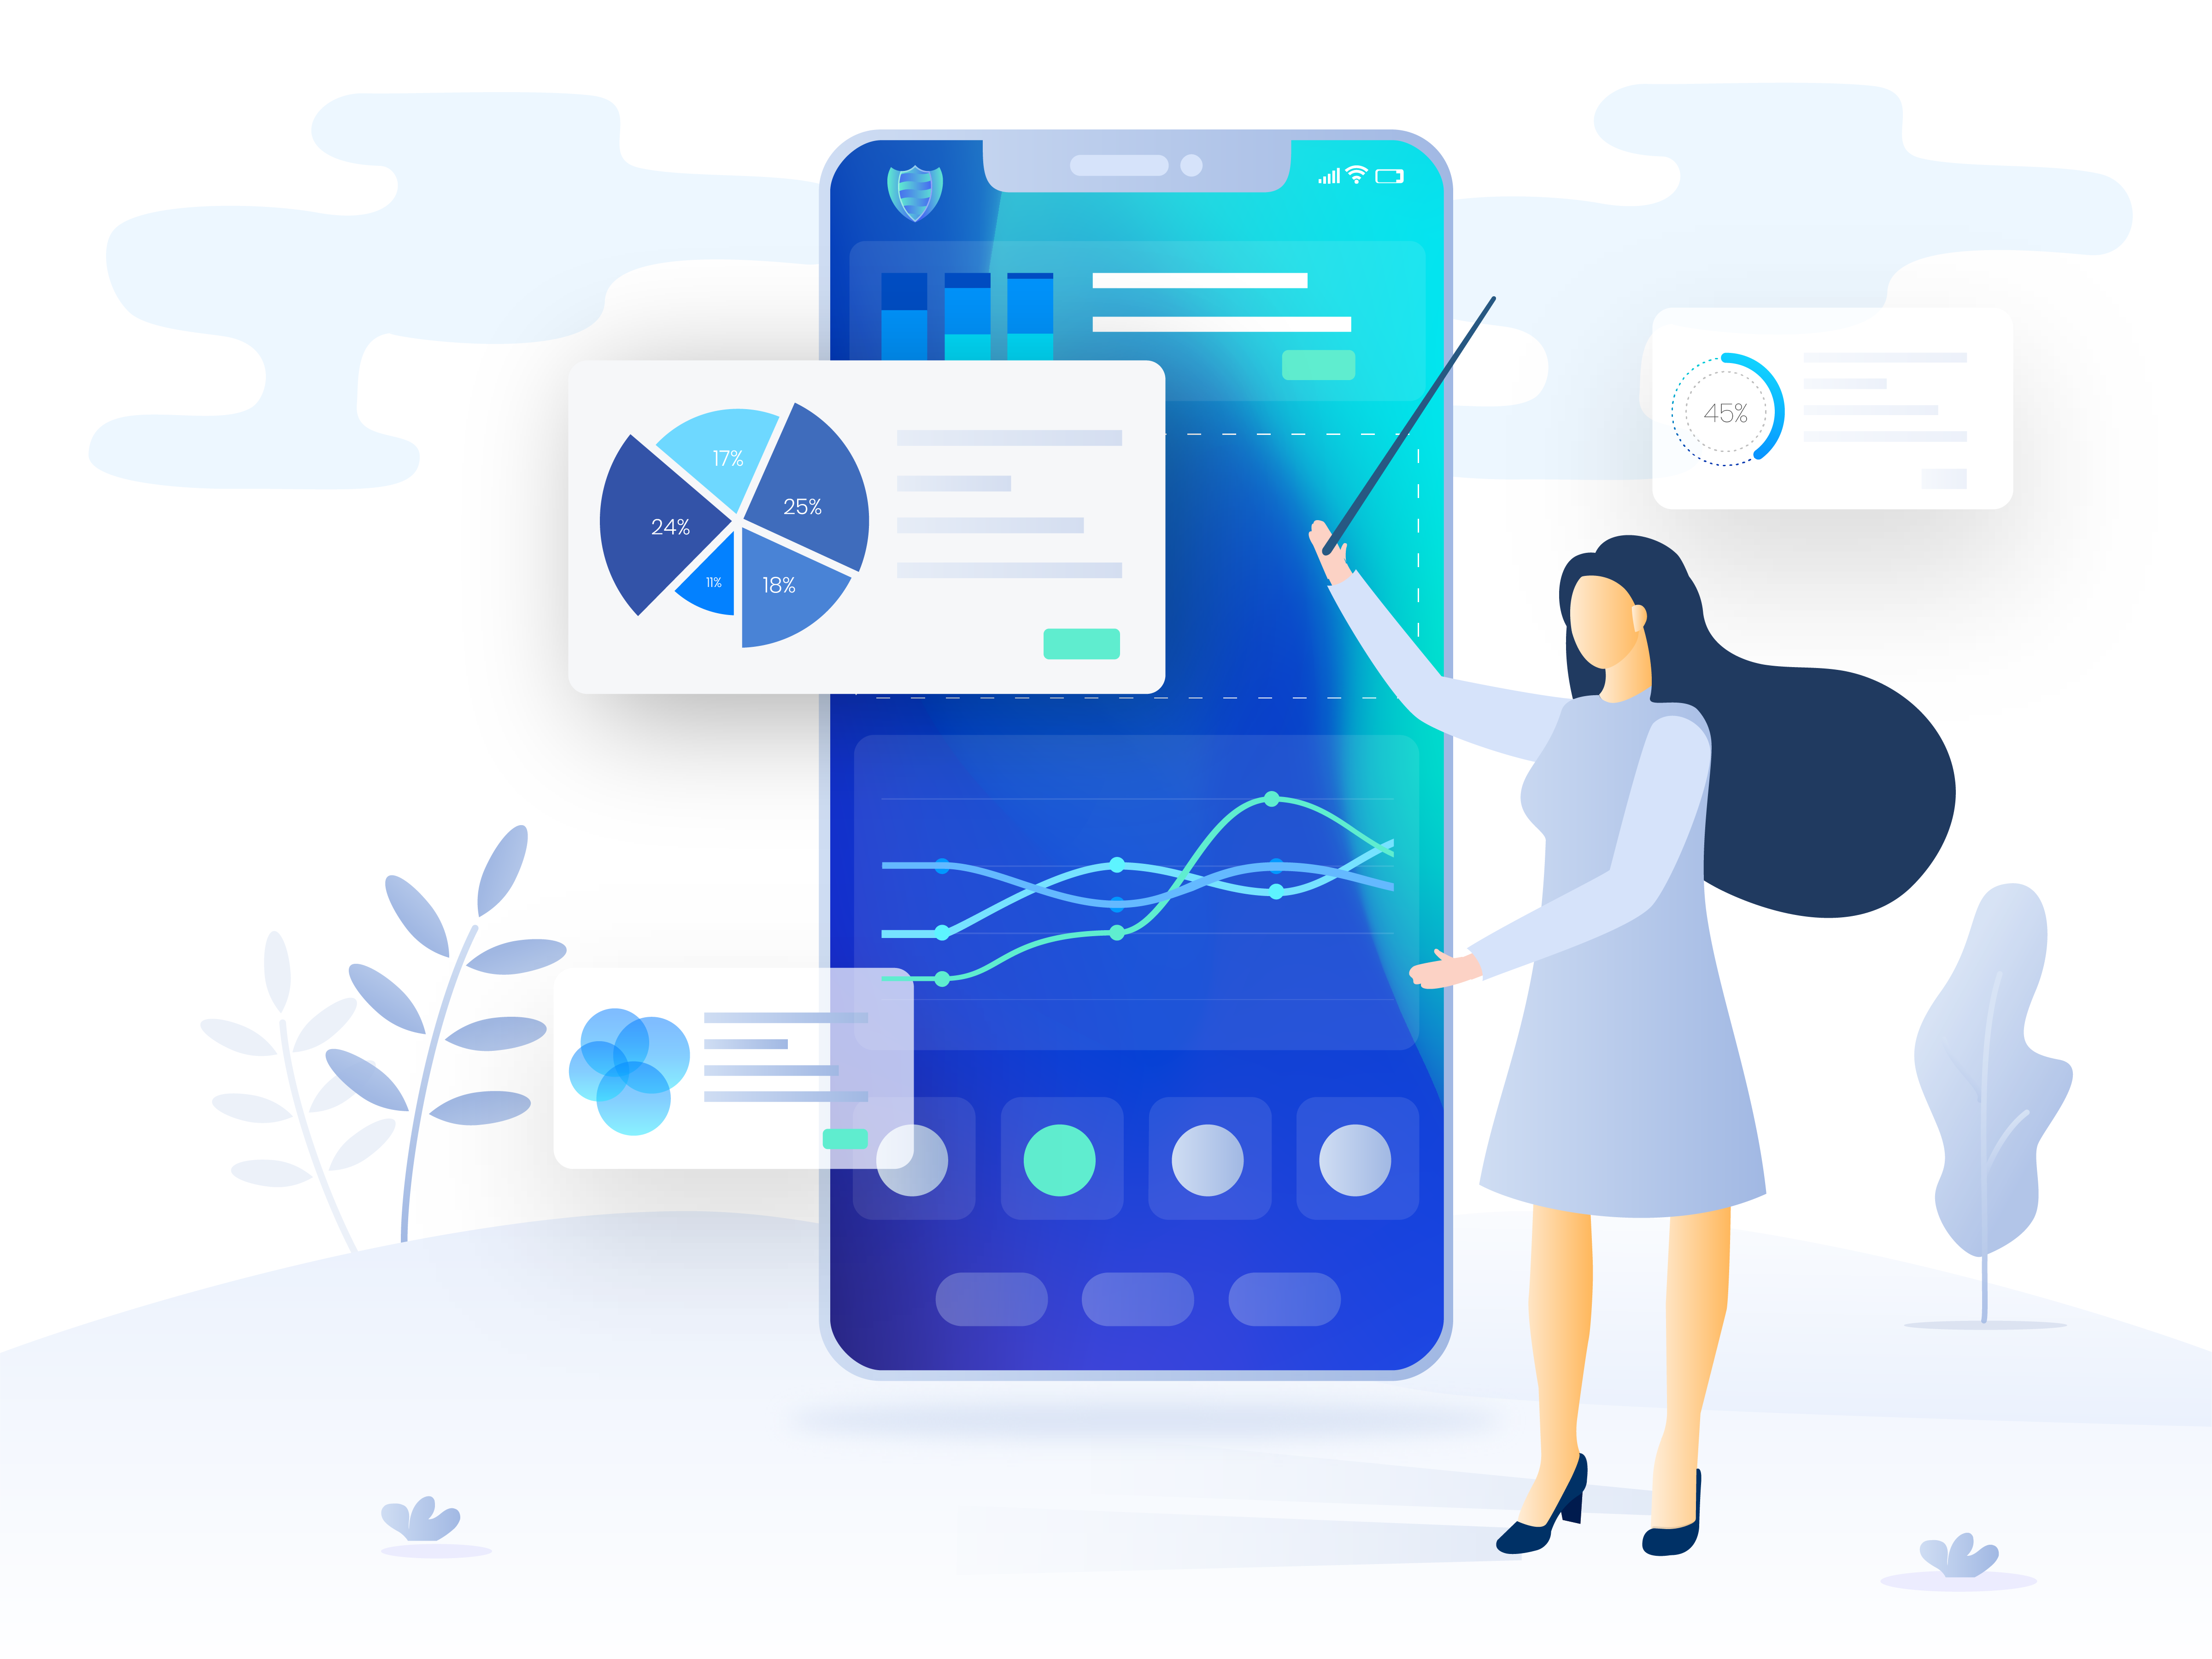 Dashboard illustration for a SaaS application